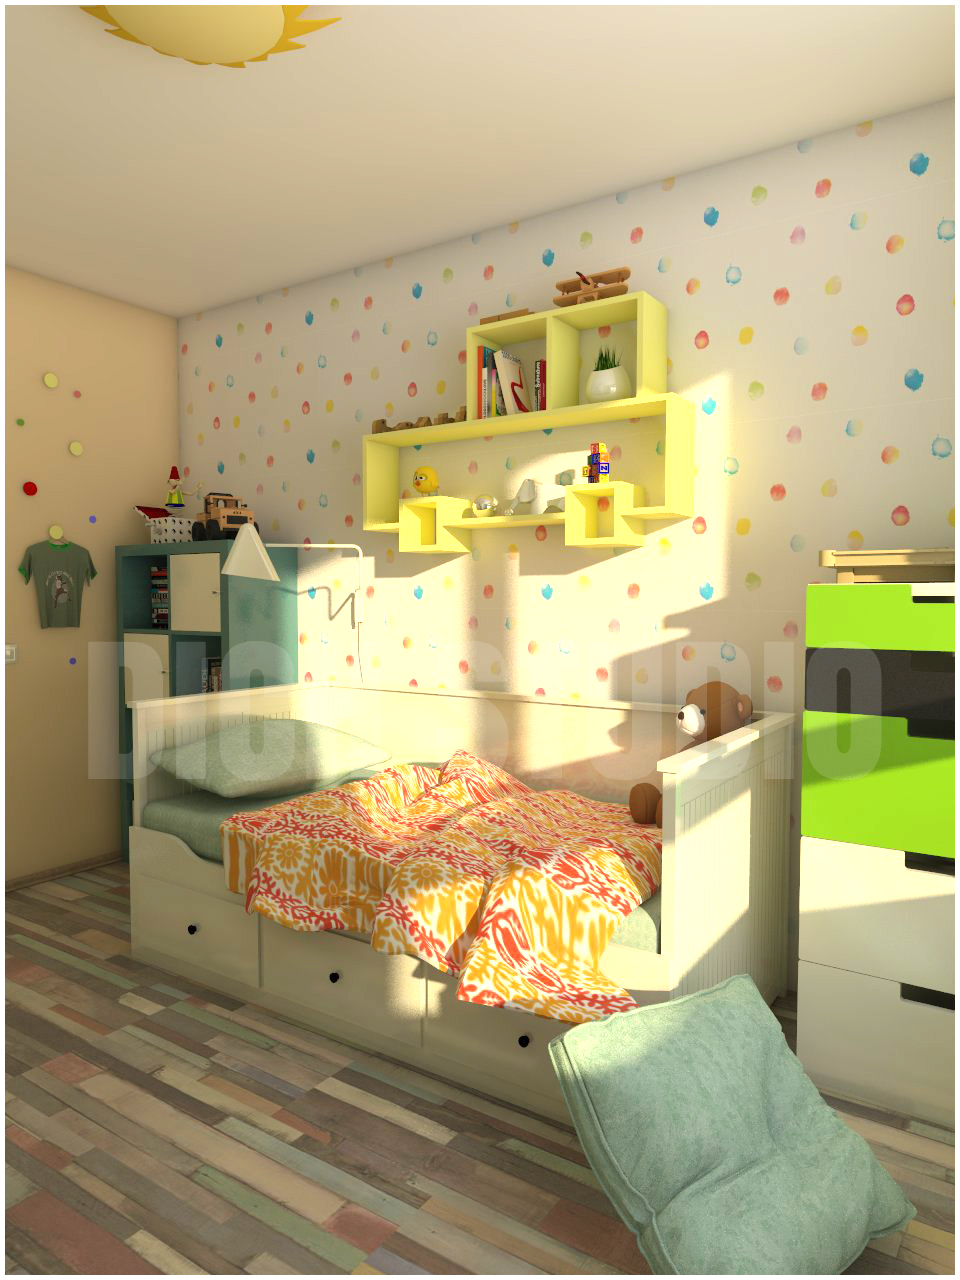 Kids room interior design project Mladost Sofia